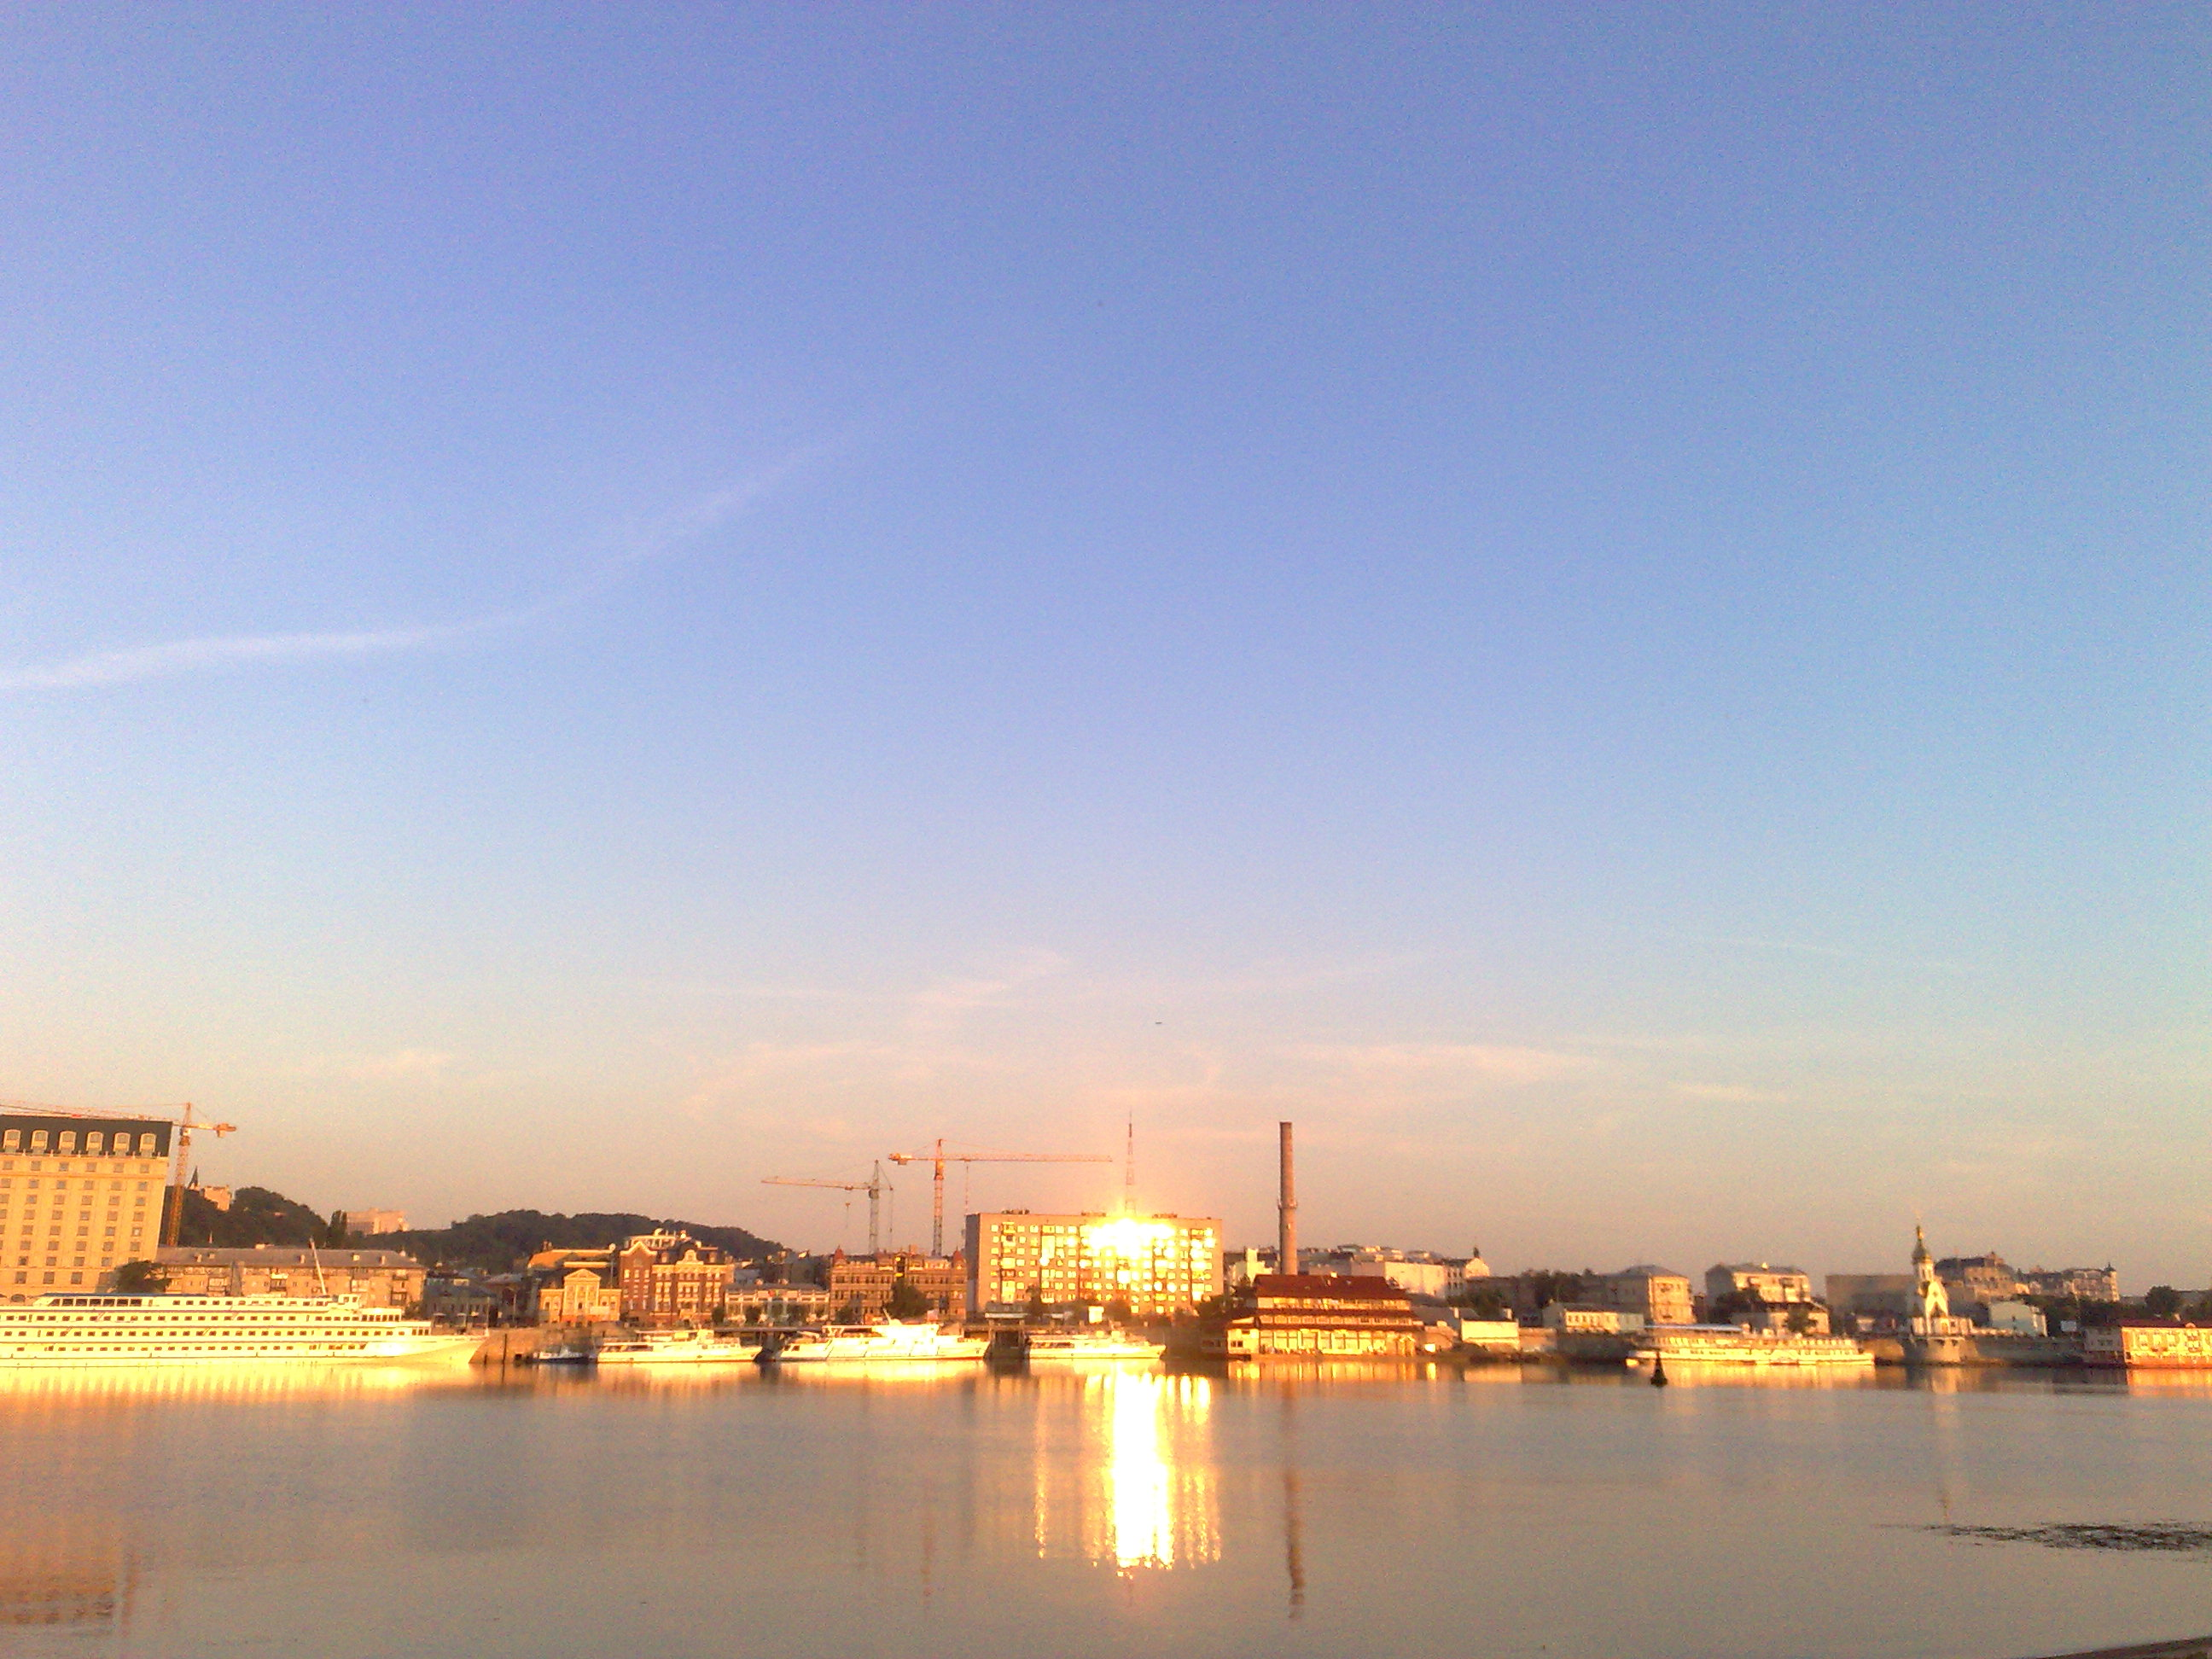 dawn breaks over the Dnipro, and reflects in the windows